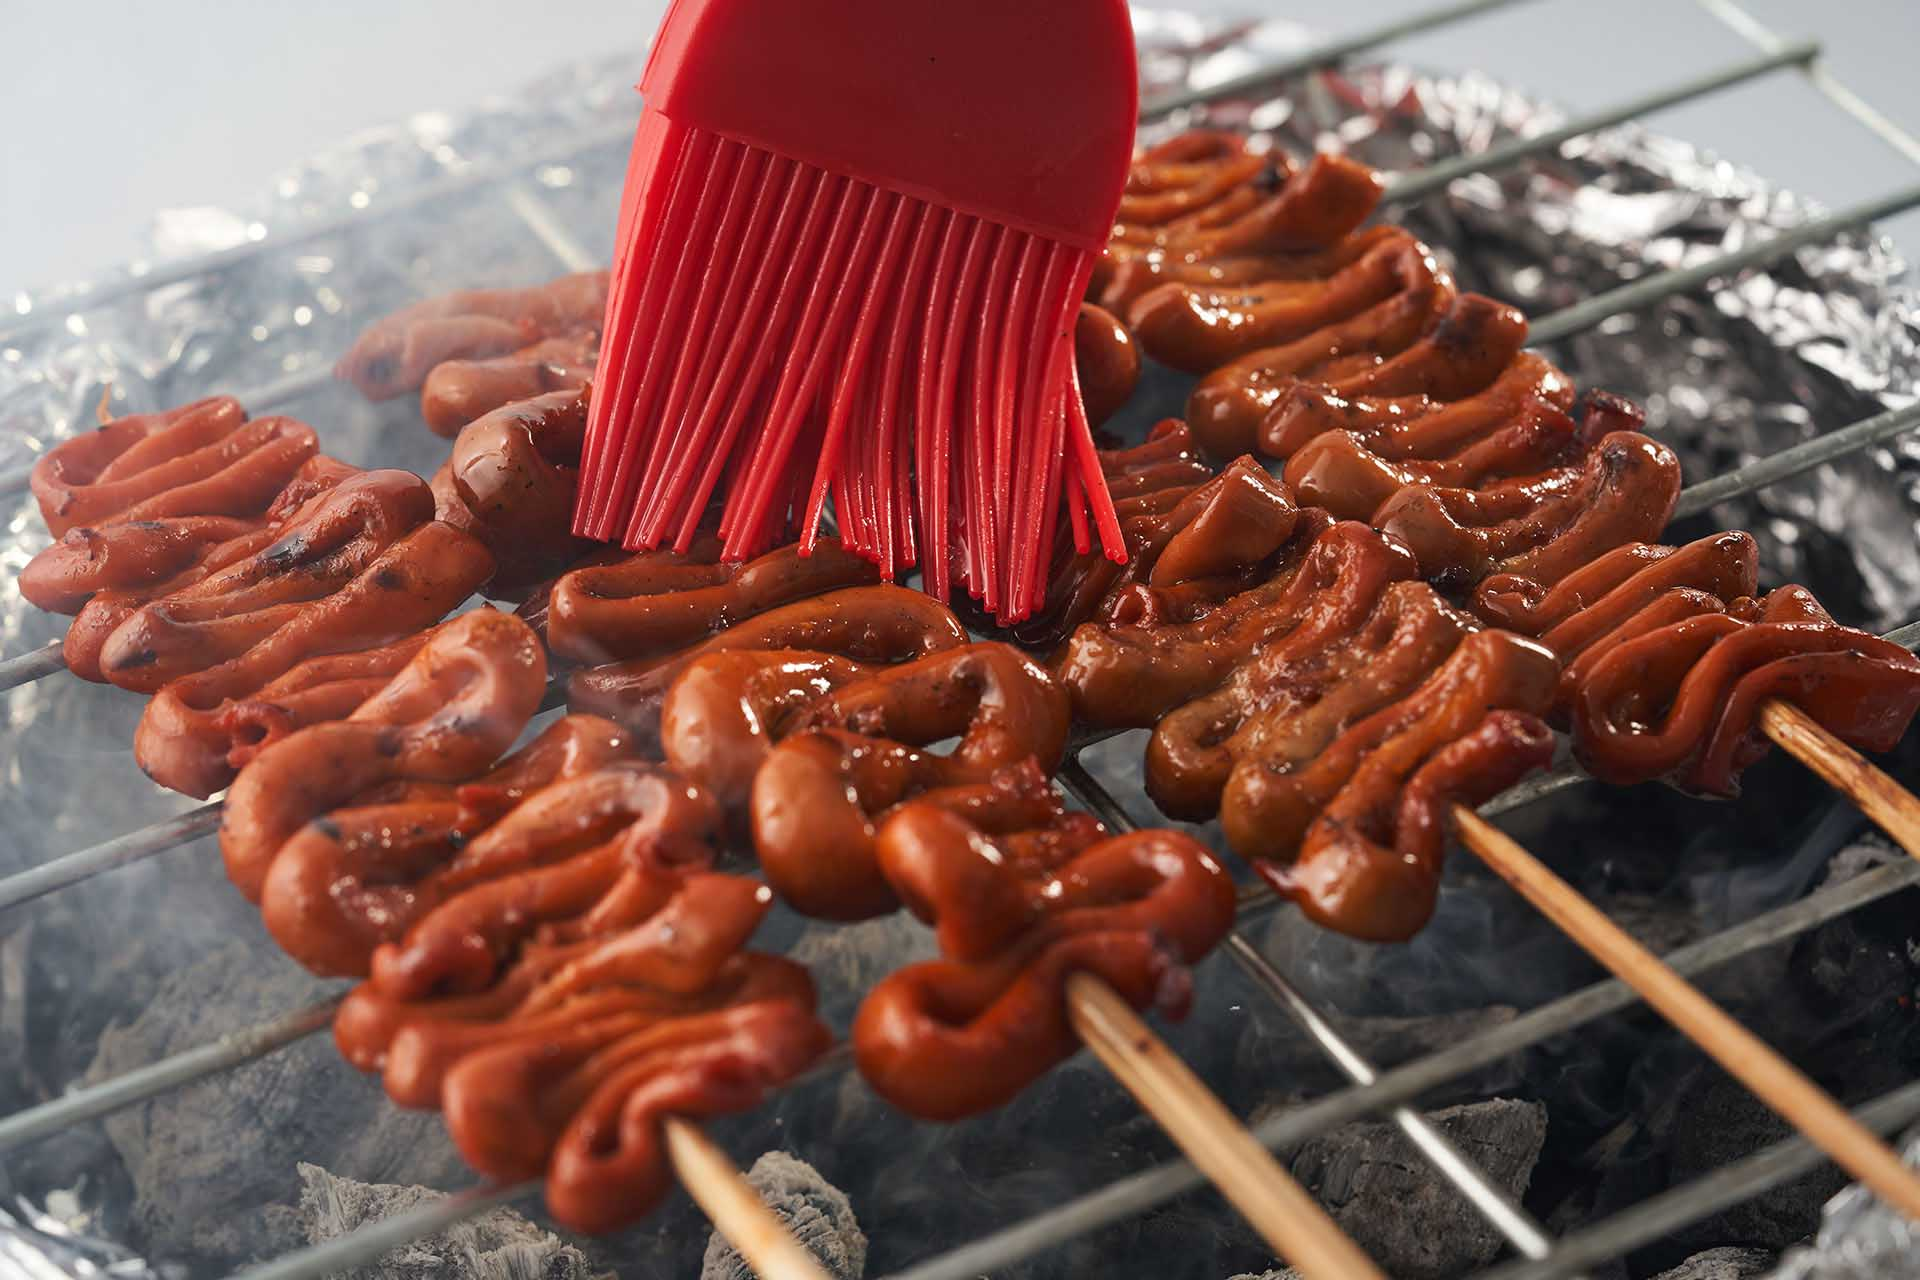 Skewer and grill the intestines